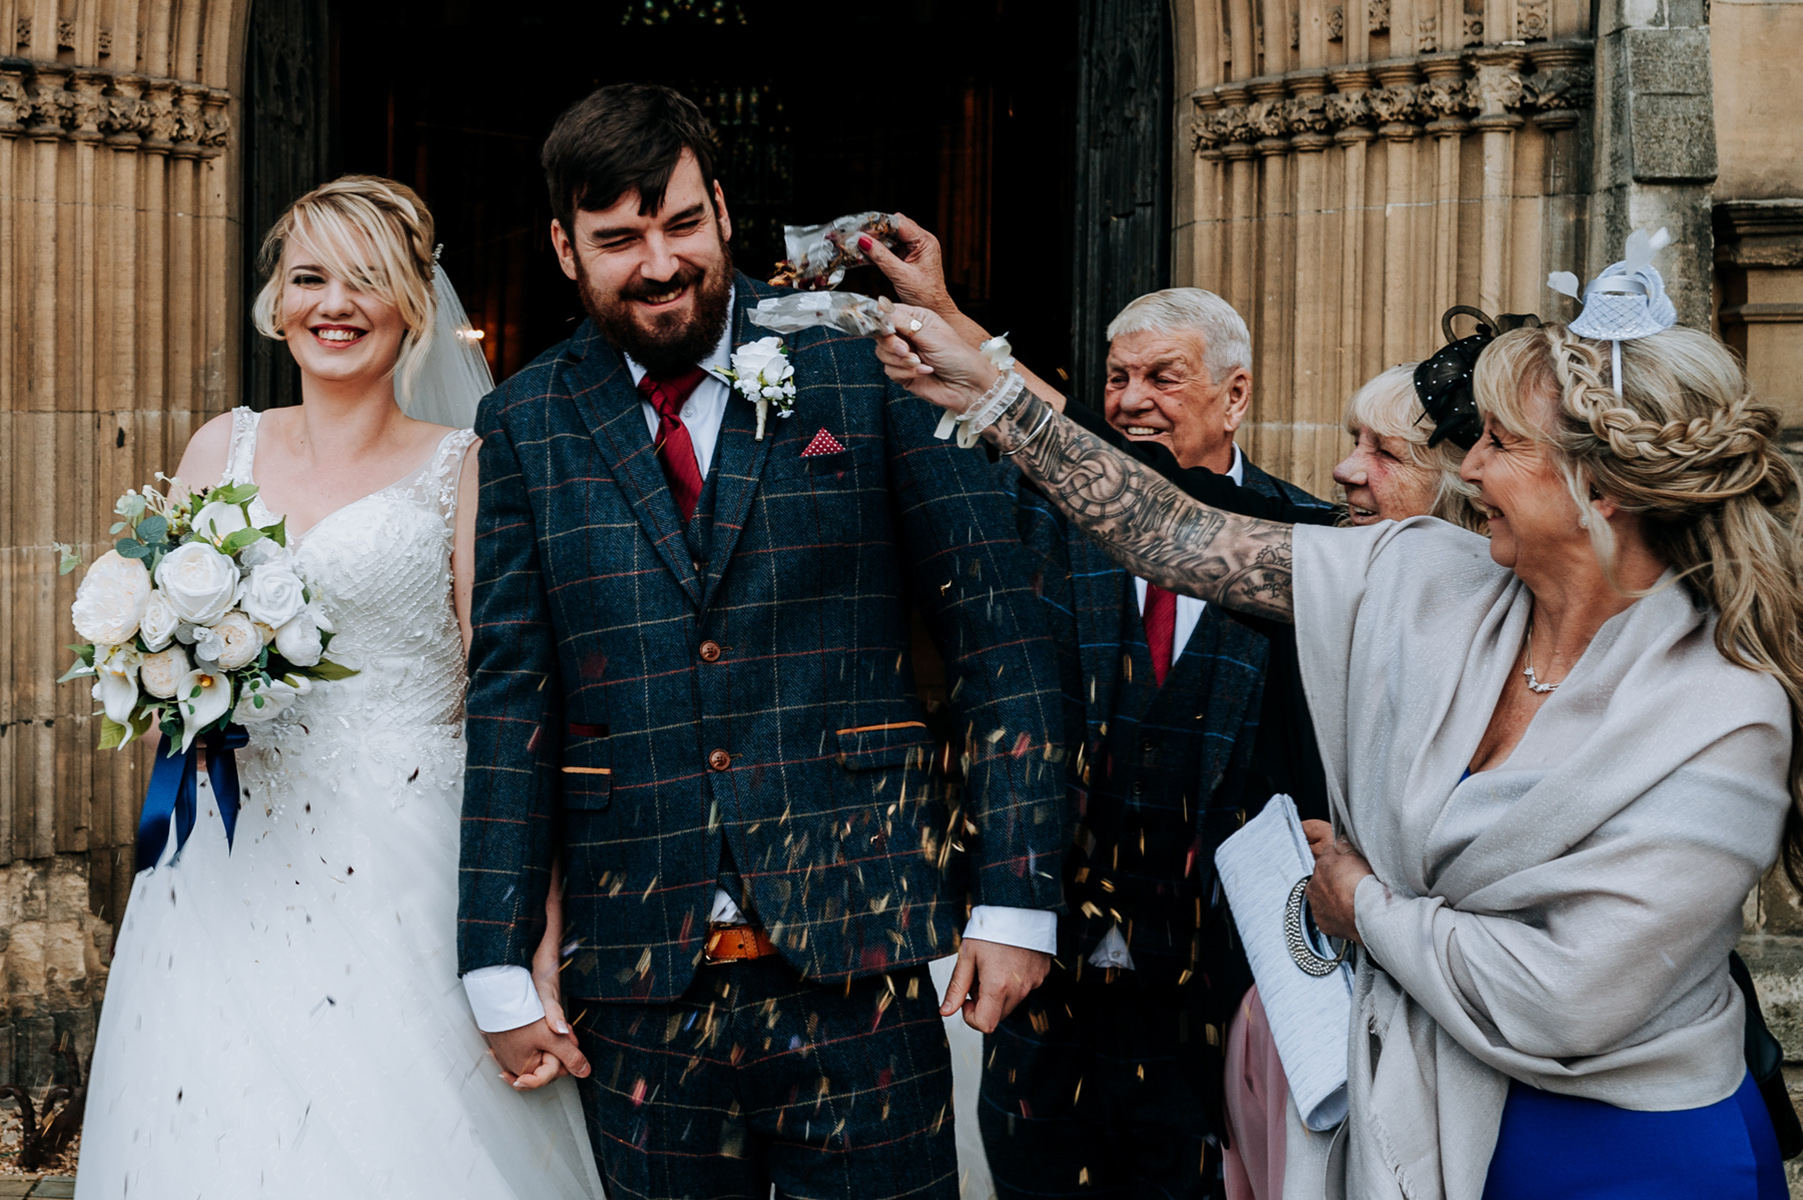 UK, Hull Minster Wedding Image | guests cover the happy couple in confetti